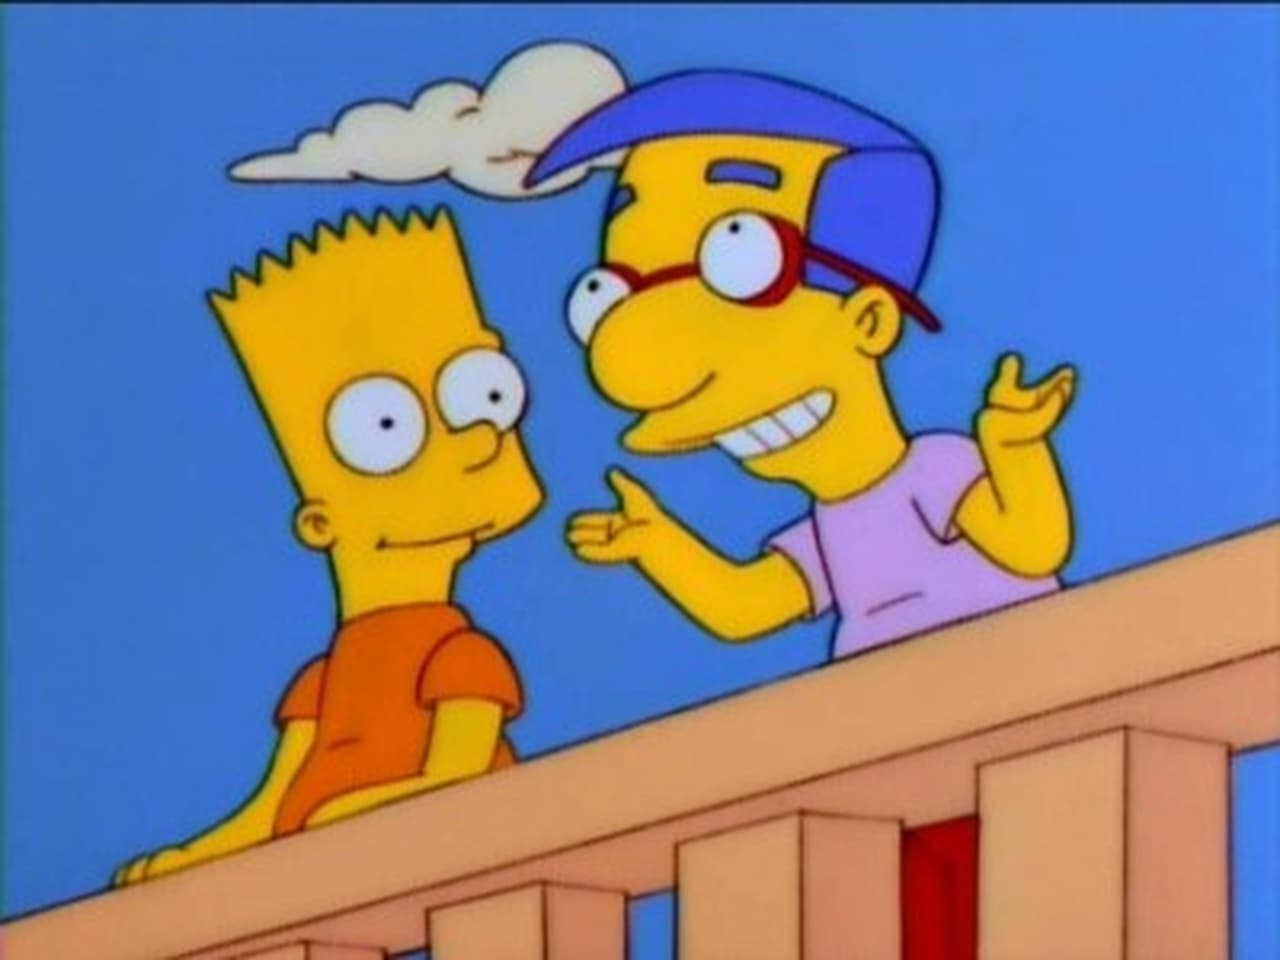 The Simpsons - Season 7 Episode 21 : 22 Short Films about Springfield